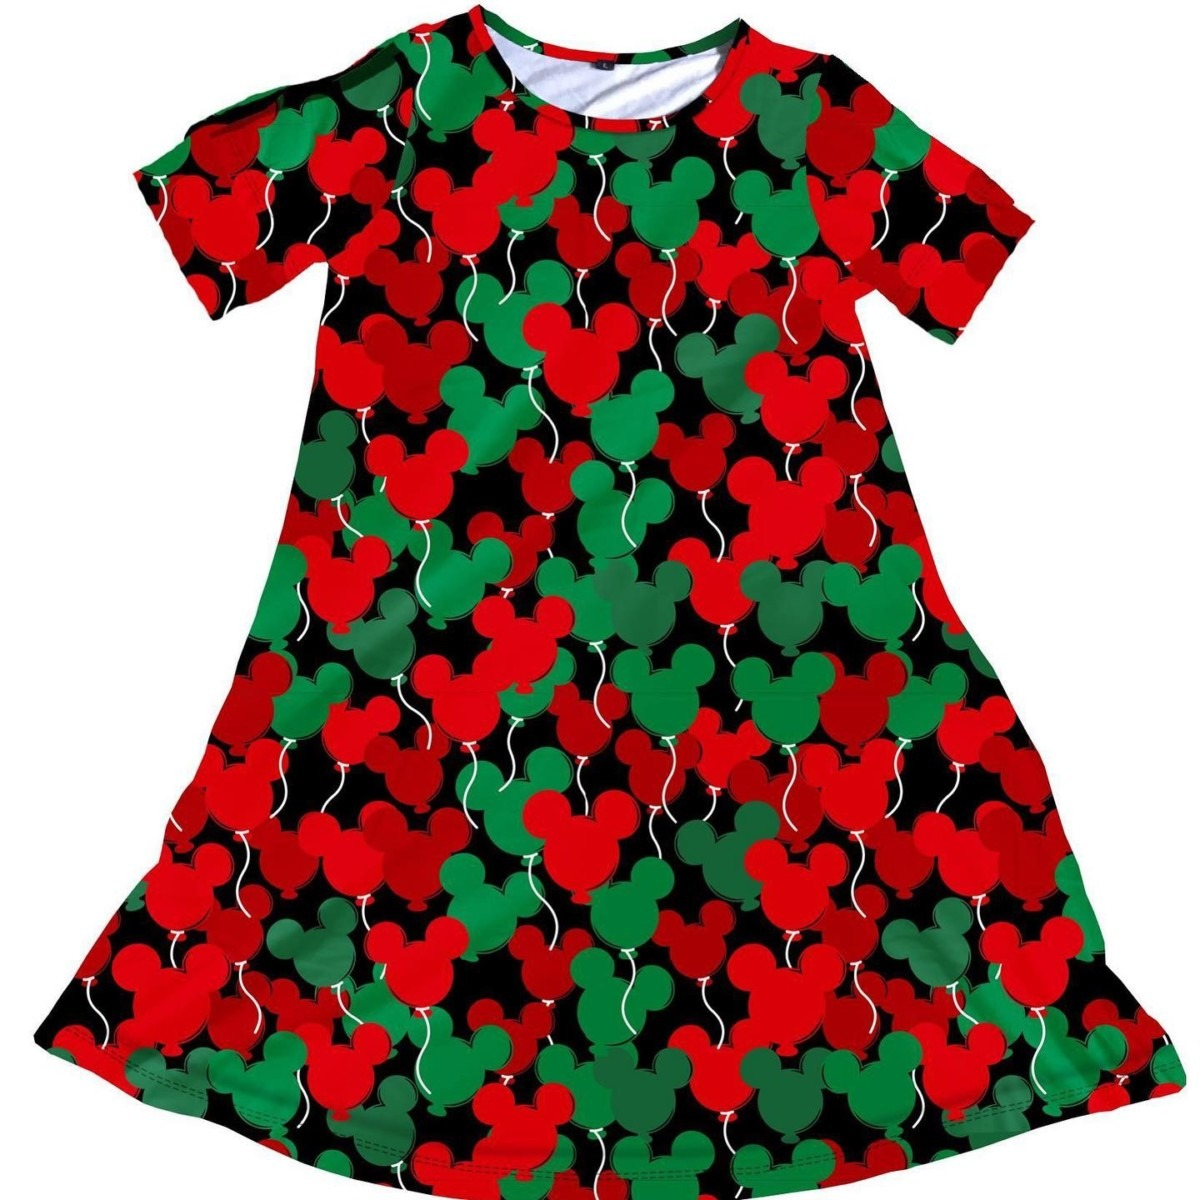 Get Festive for the Holiday Season with Lost Princess Apparel! #DisneyStyle 1